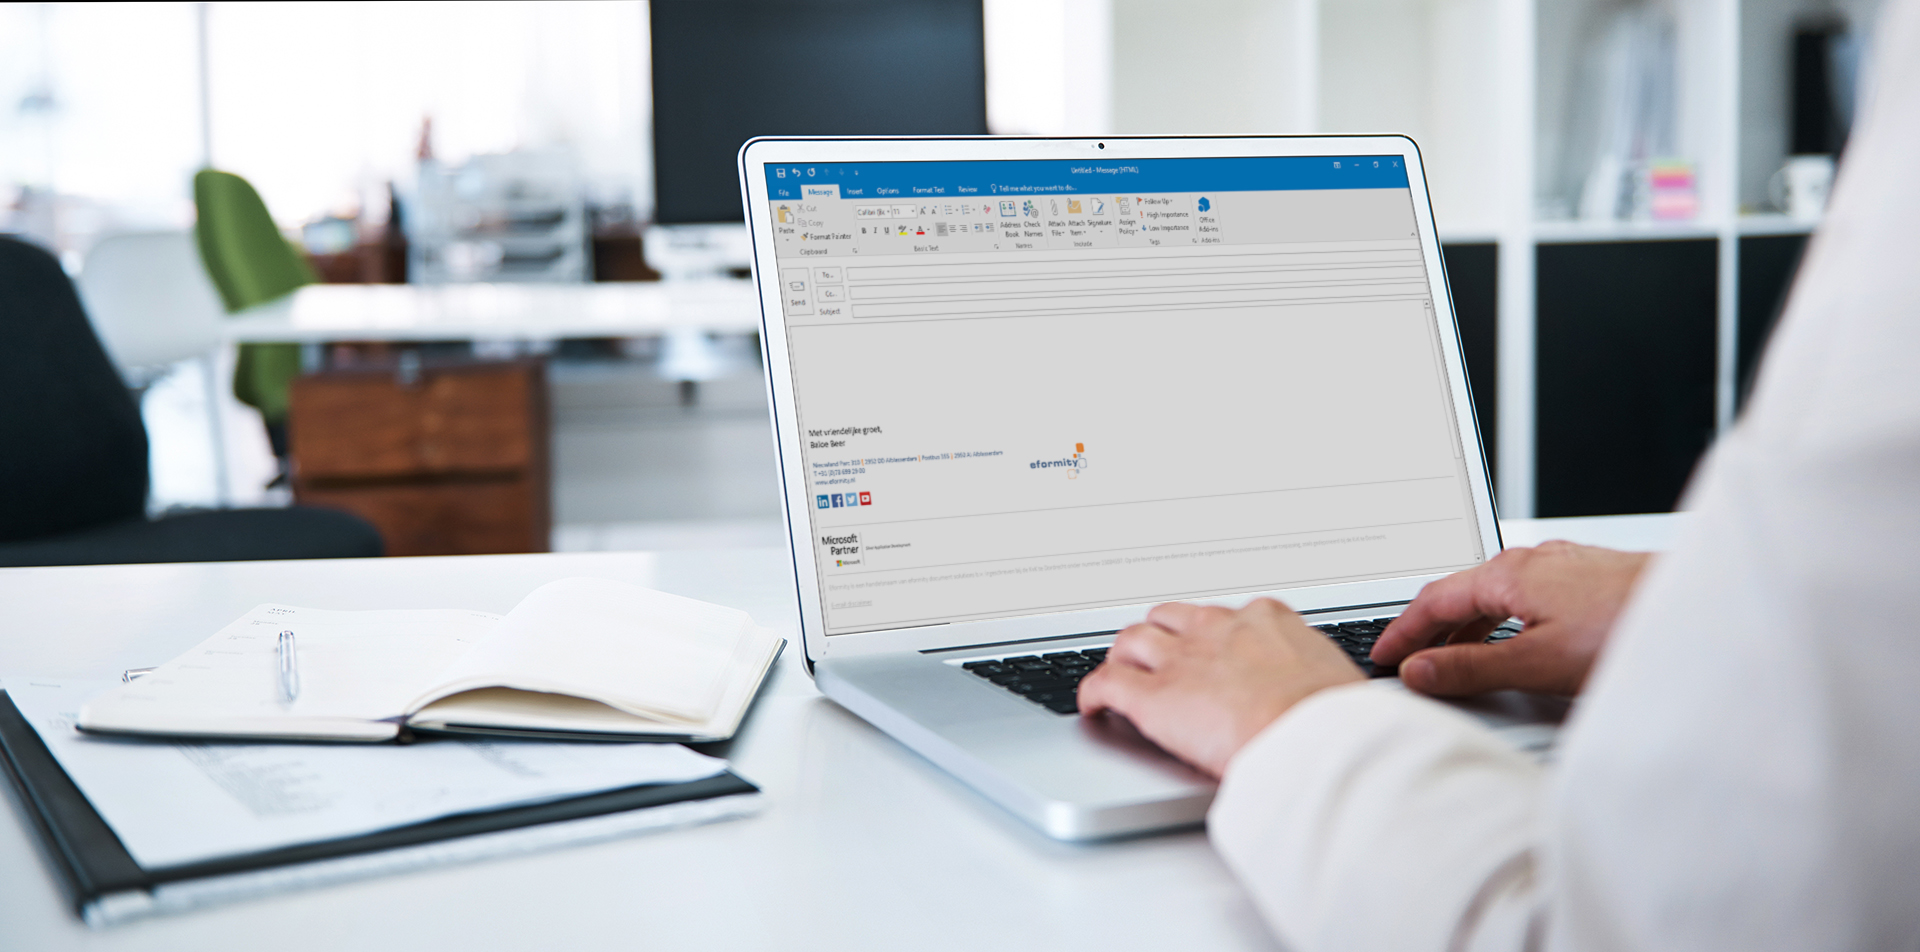 Hyperlinks opmaken in Microsoft Outlook